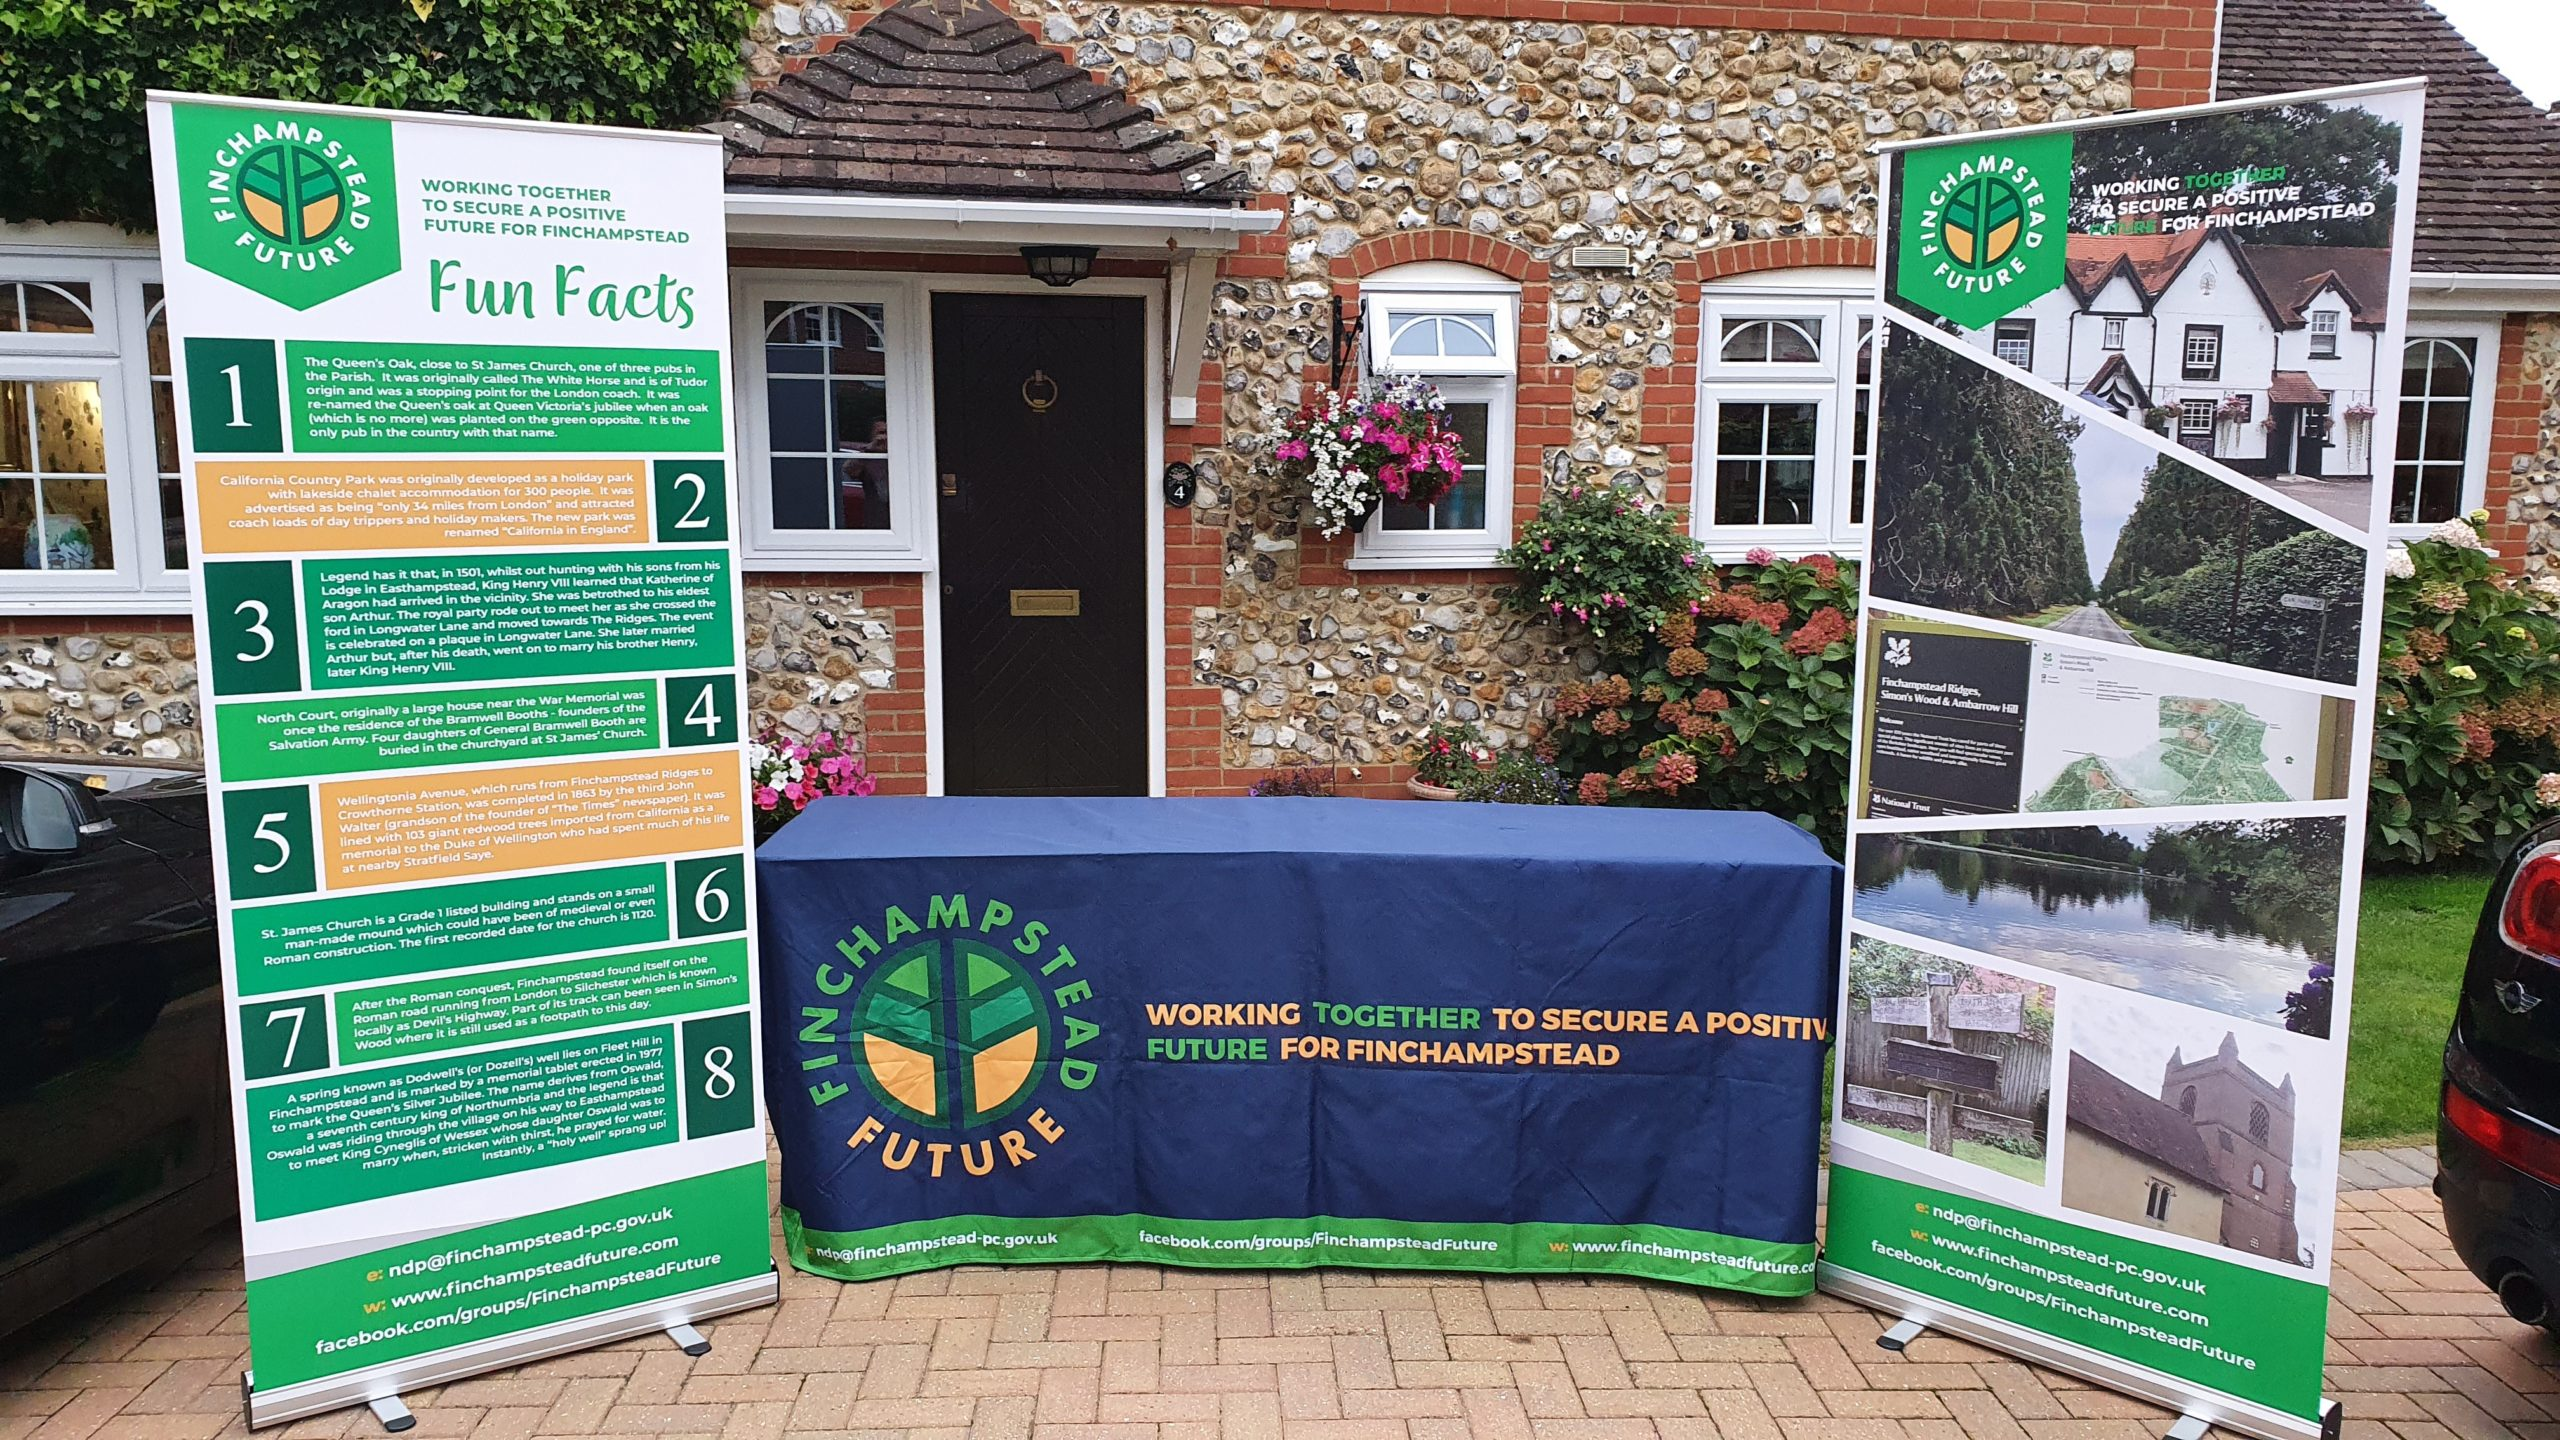 Two banners with images and fun facts about the parish - promoting the Neighbourhood Development Plan